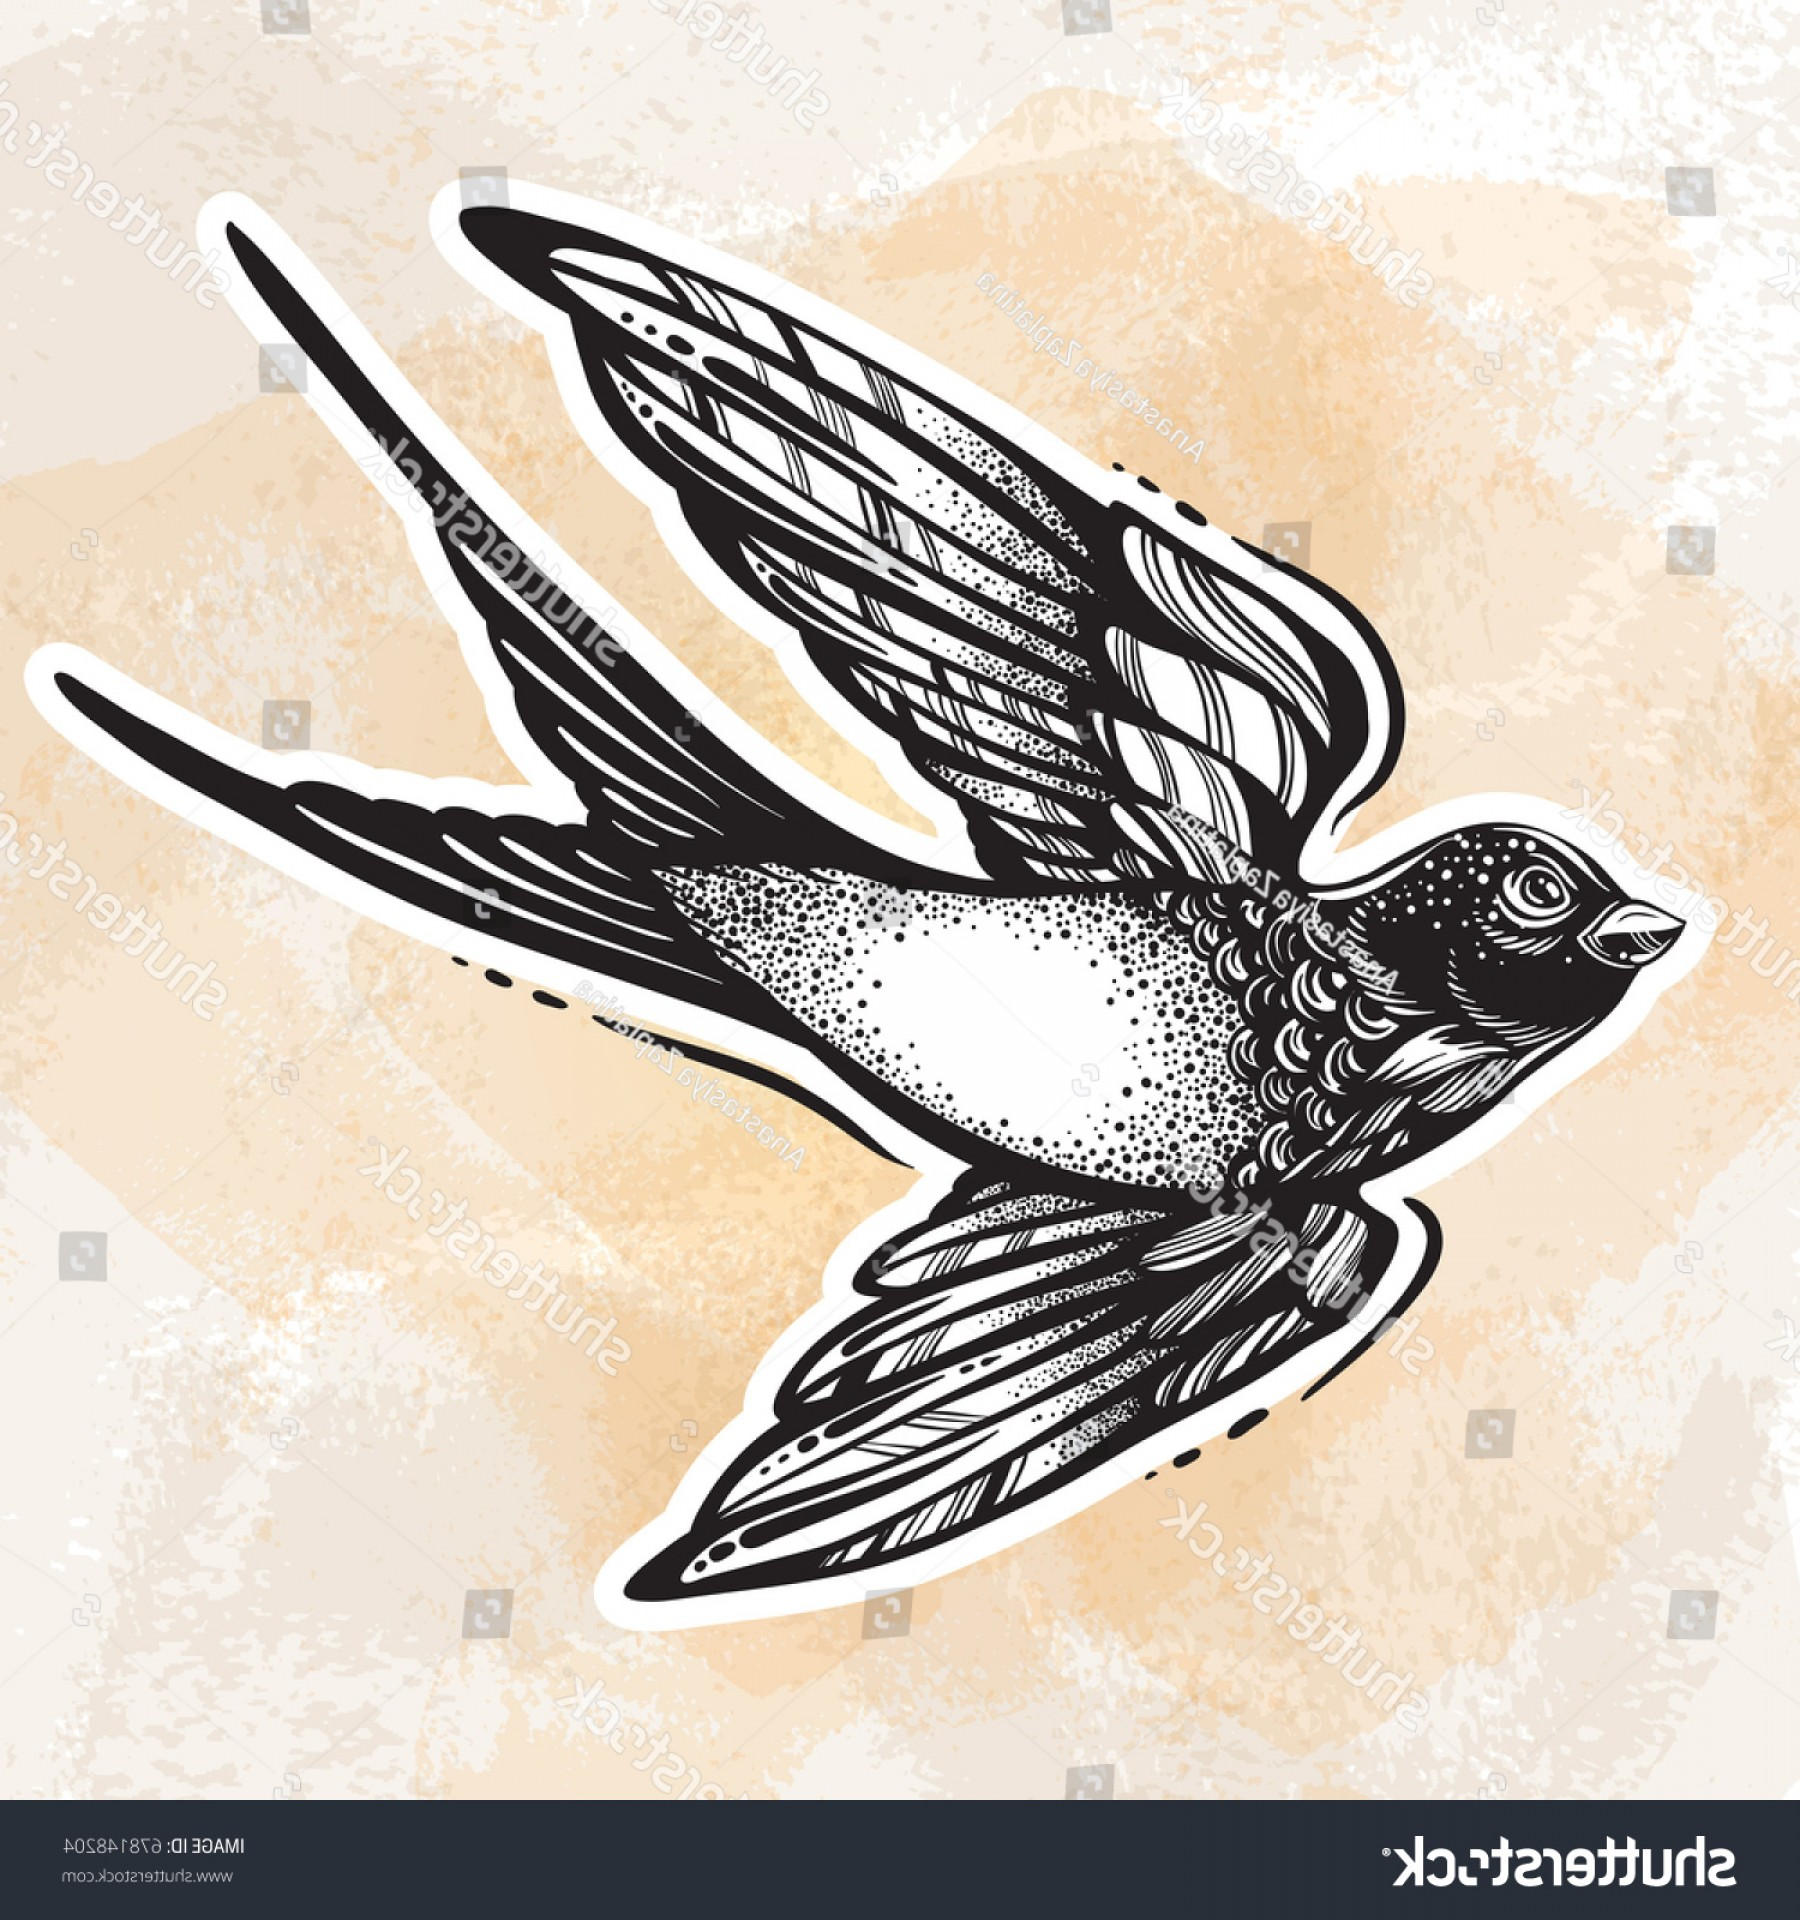 Detailed Tattoo Vector Images: Blackwork Tattoo Flash Beautifully Detailed Flying